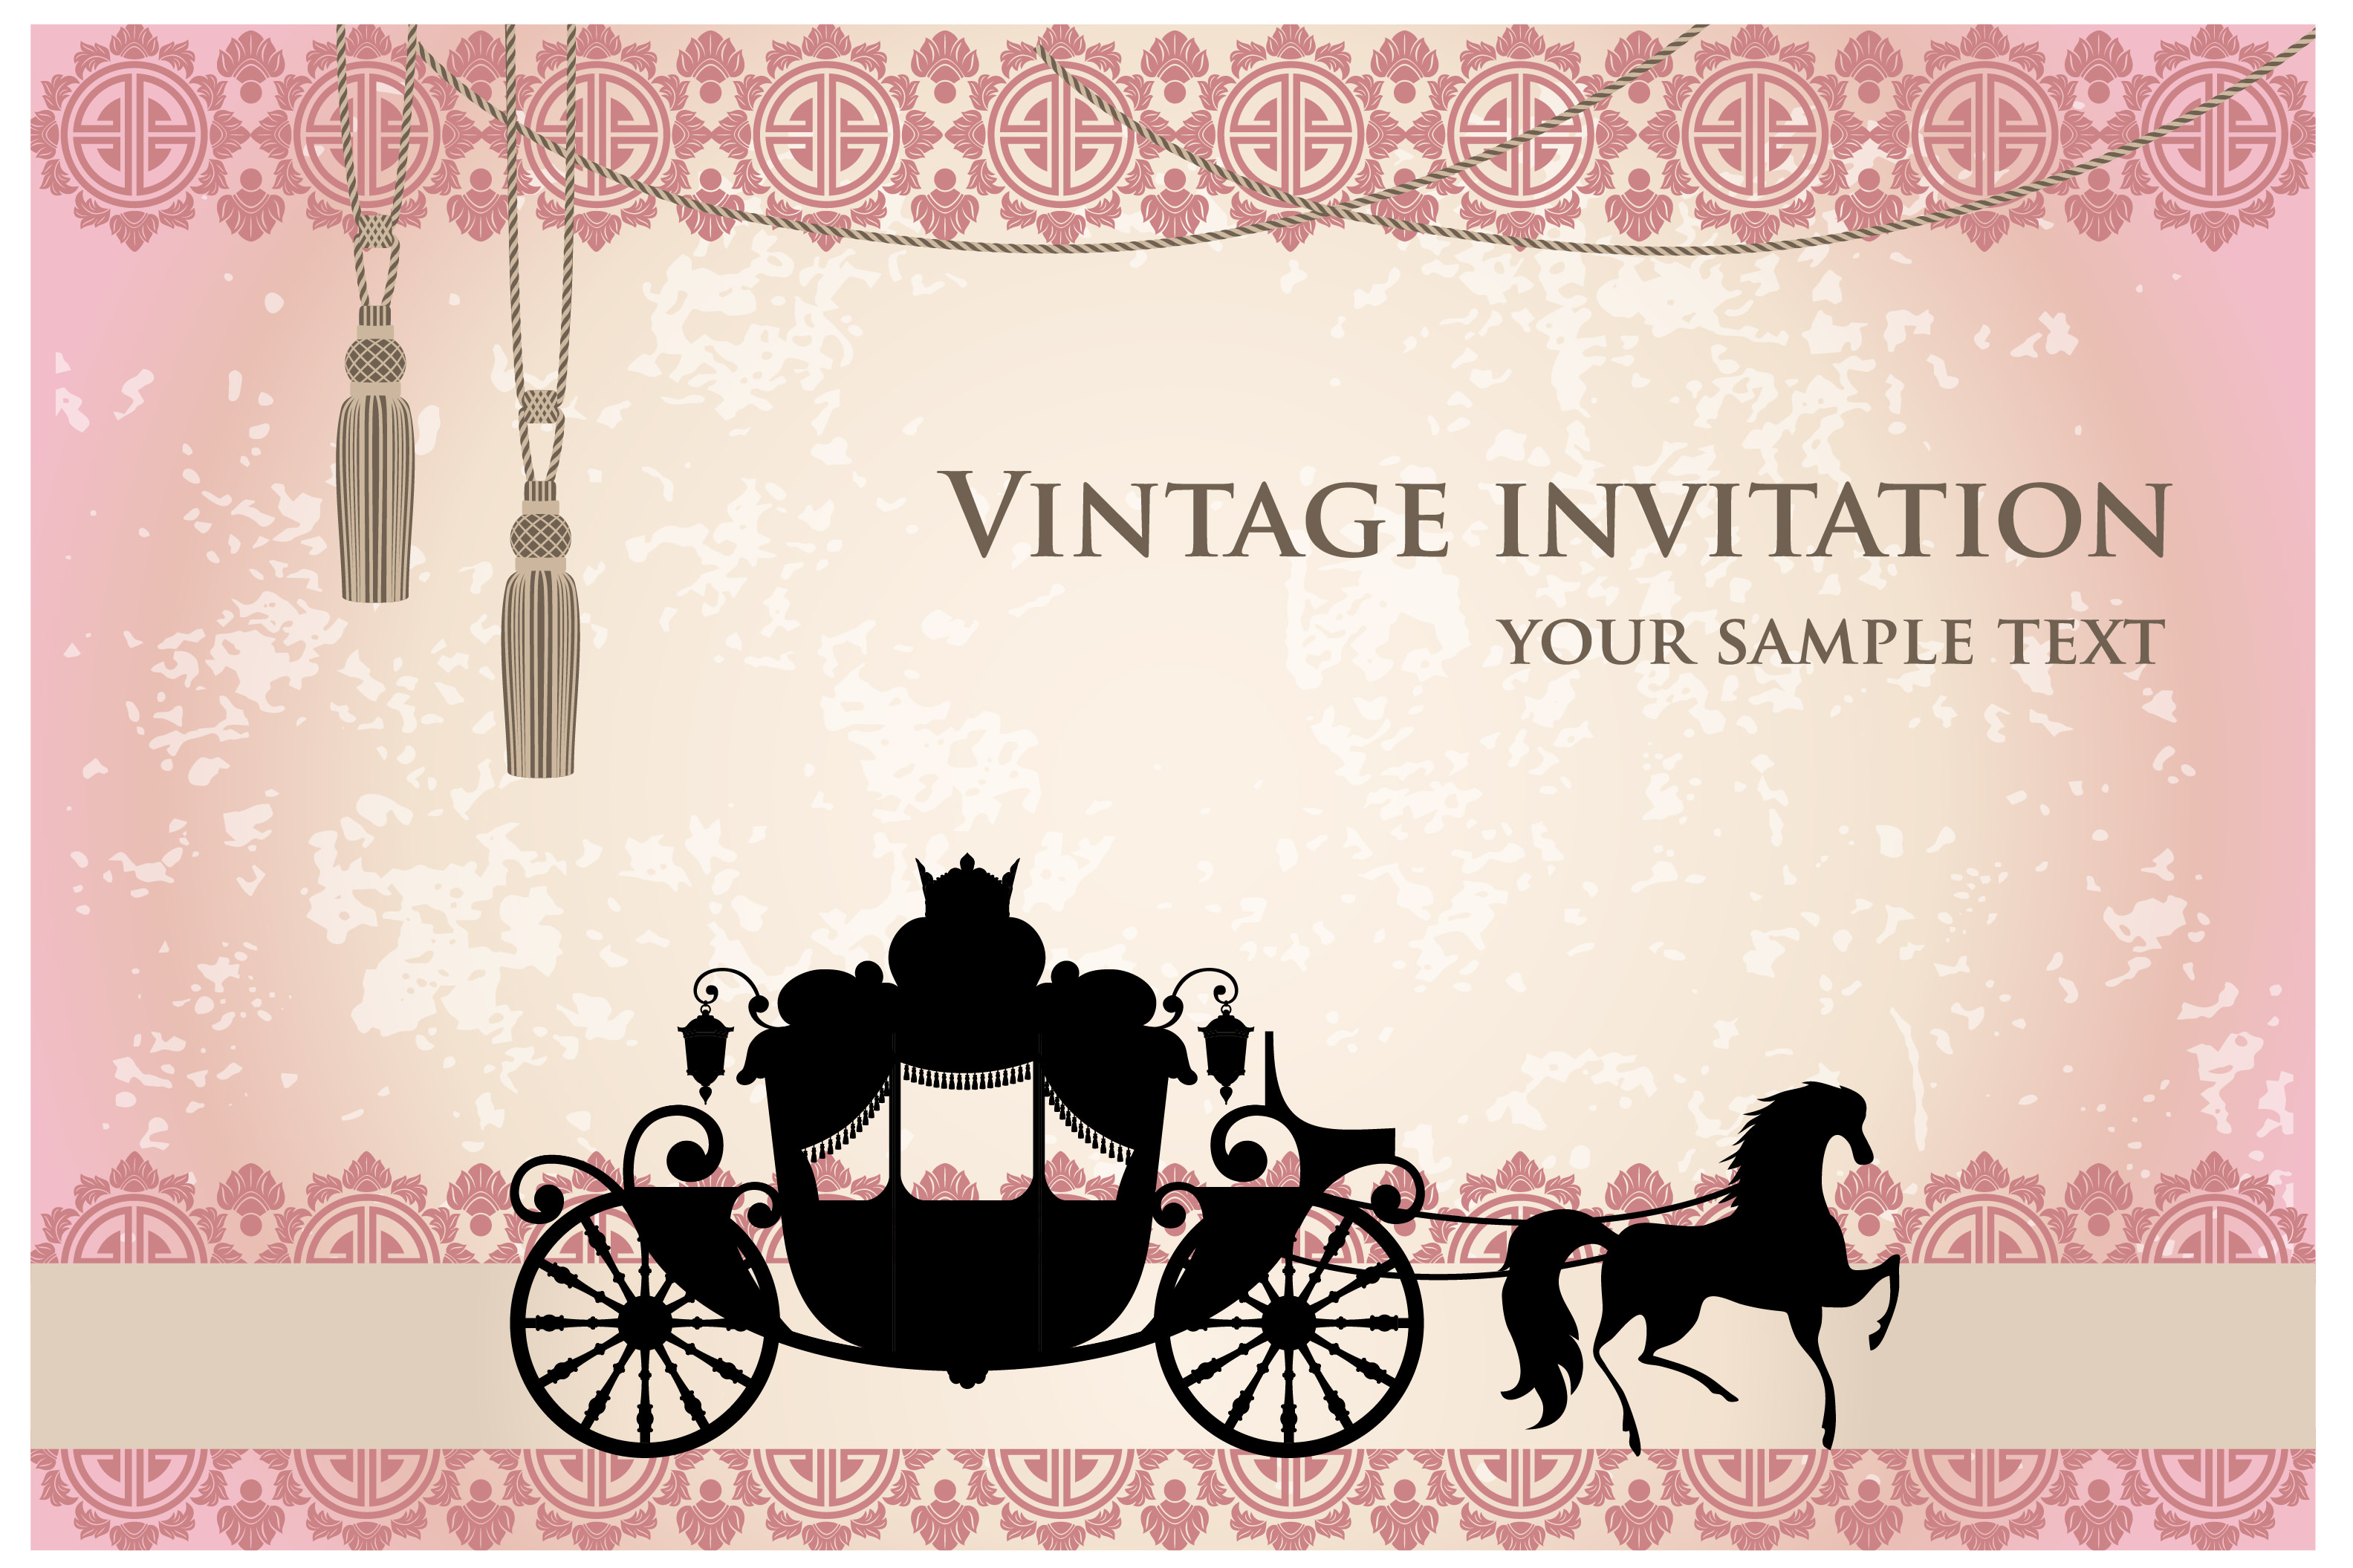 Free Wedding Invitation Background Designs: Vintage Wedding Backgrounds